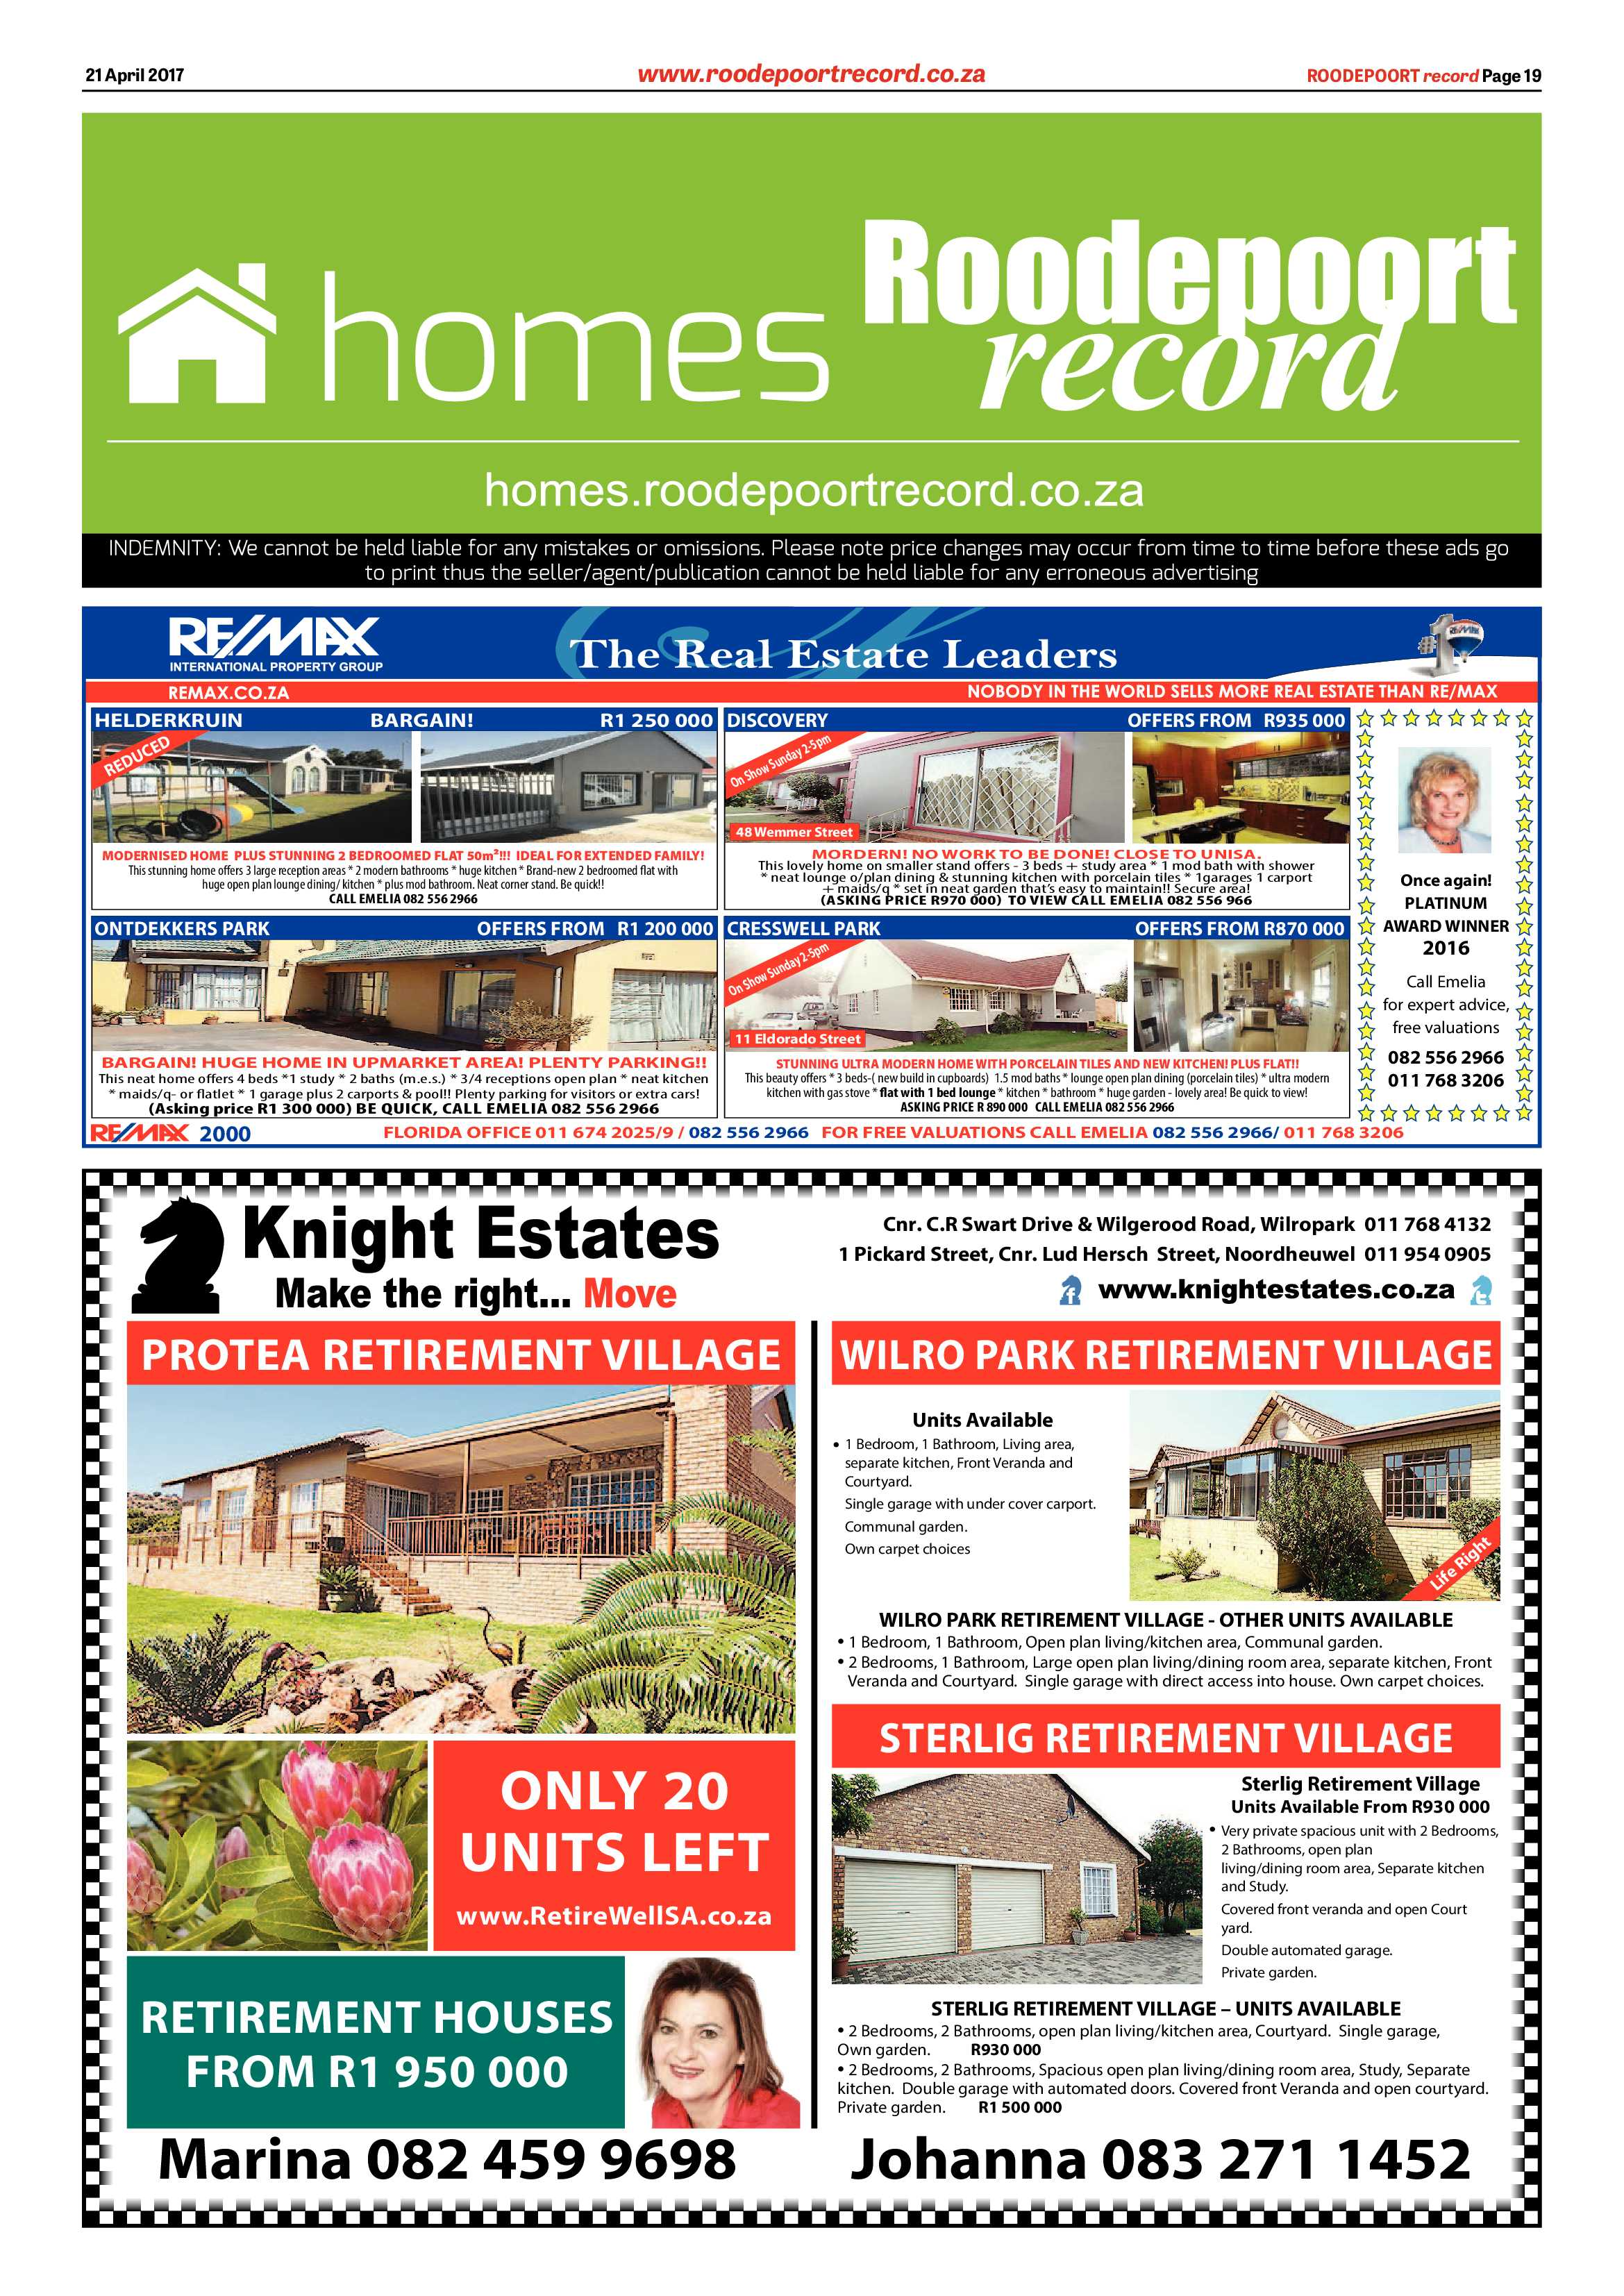 roodepoort-record-21-april-2017-epapers-page-19